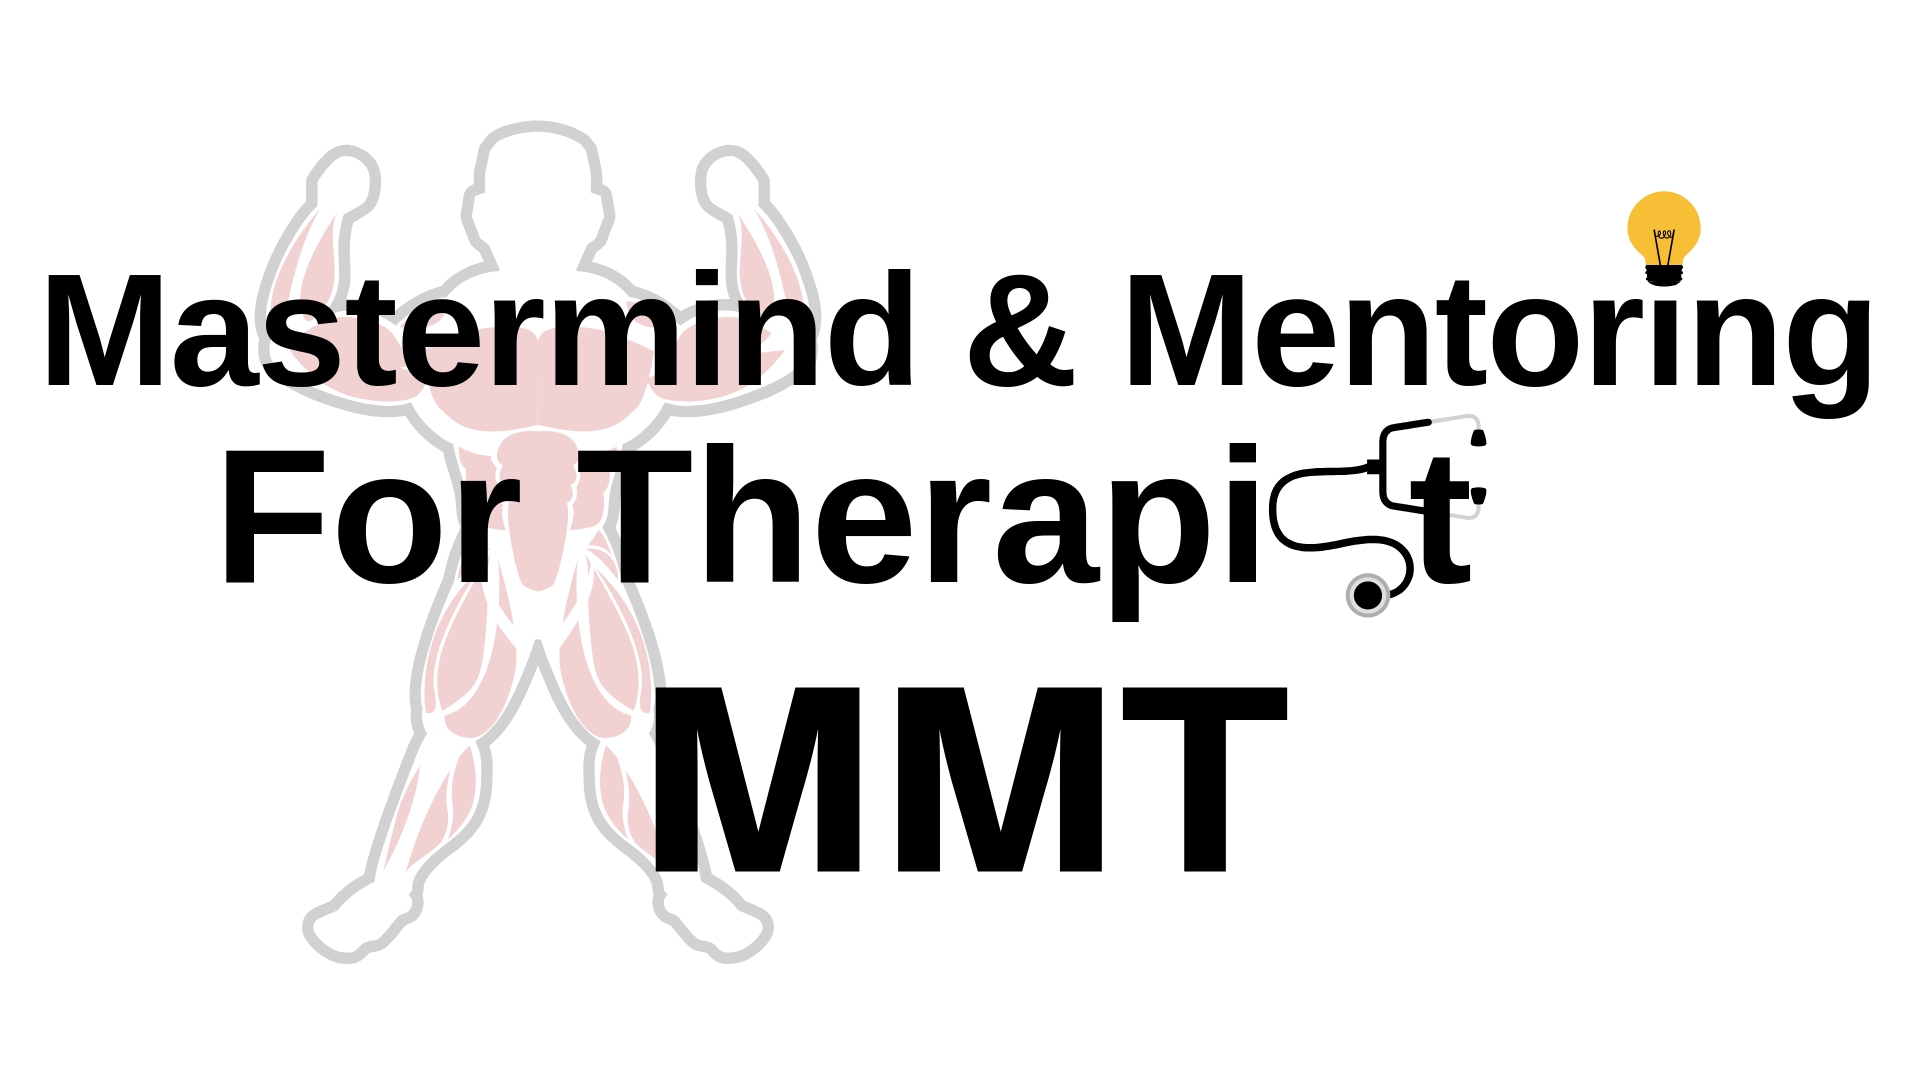 Mastermind and mentoring for therapist